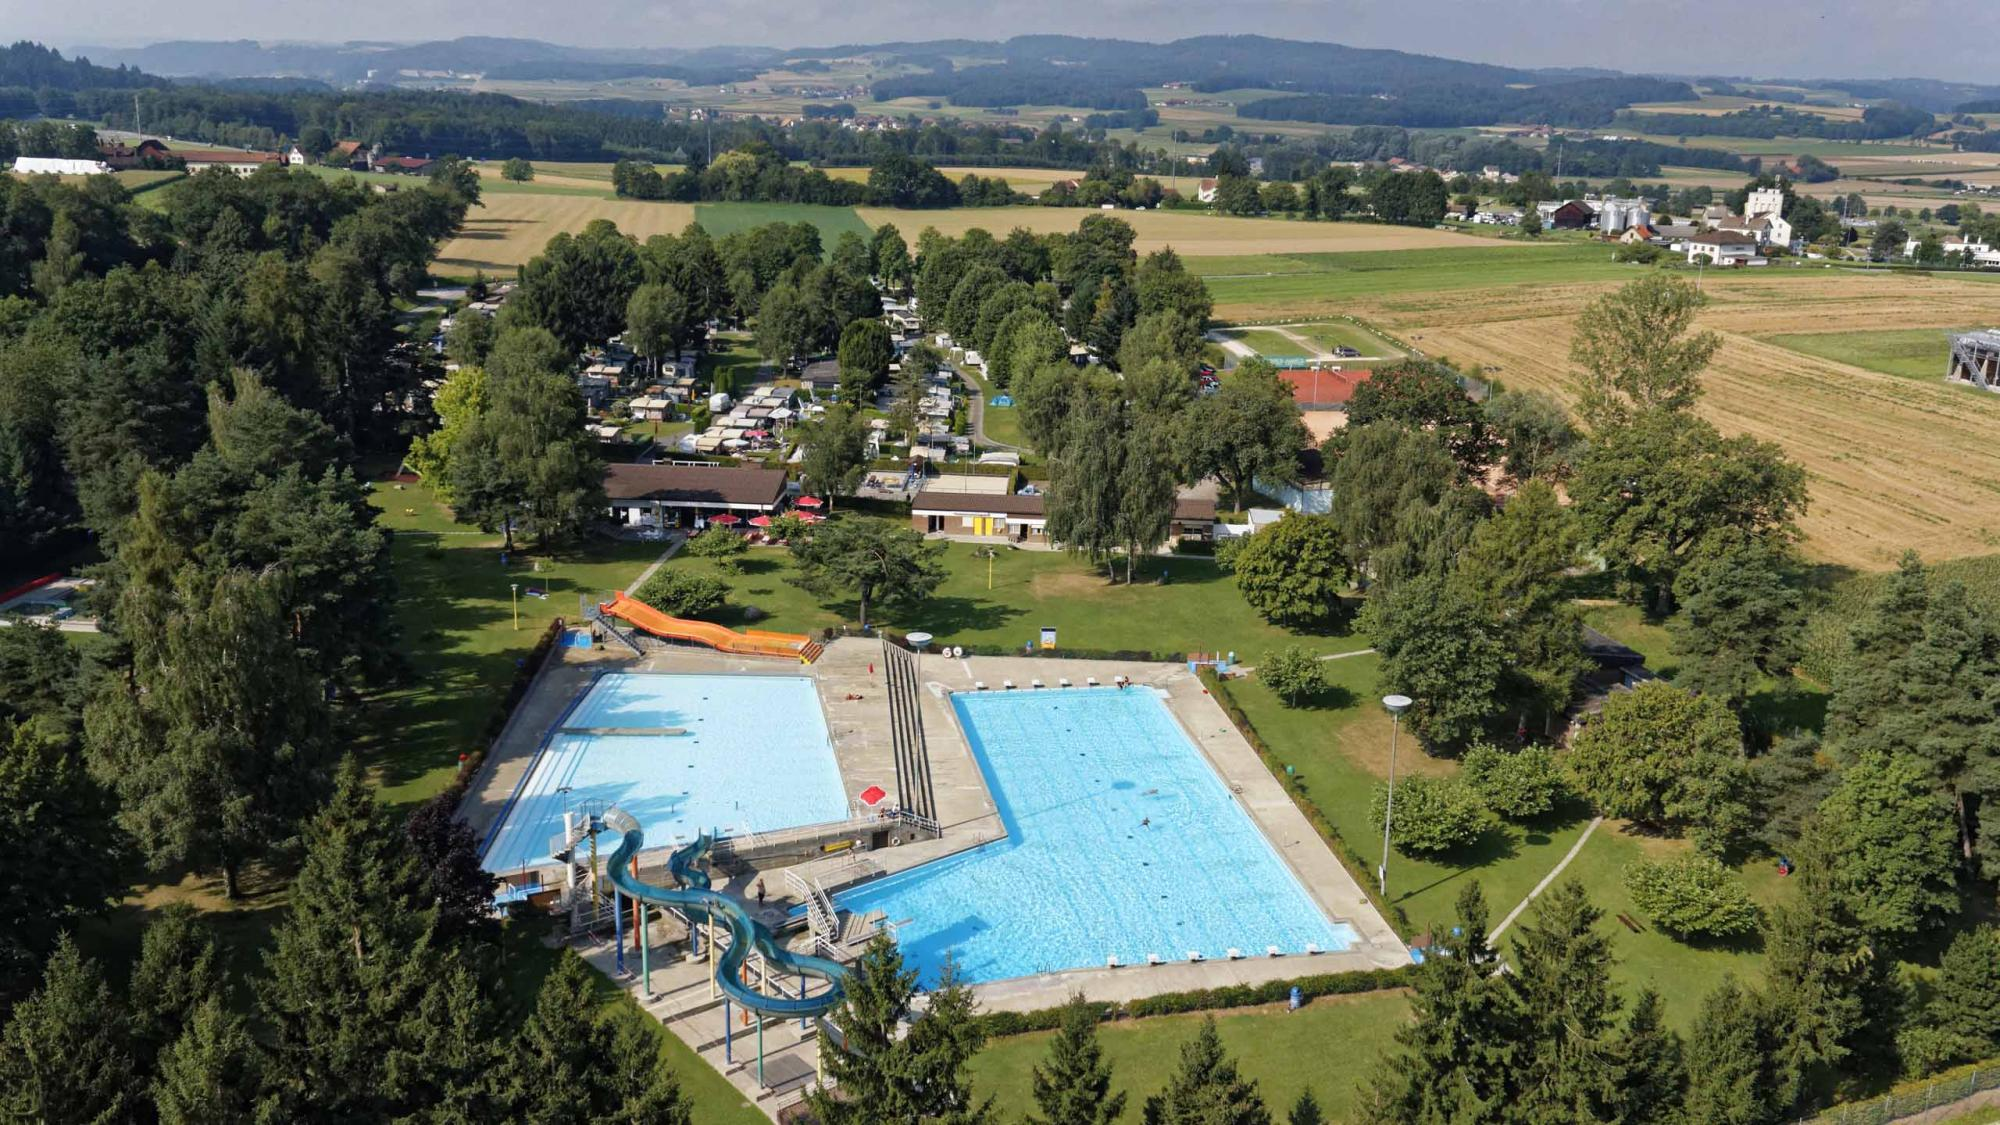 Camping piscine payerne for Camping nyons piscine